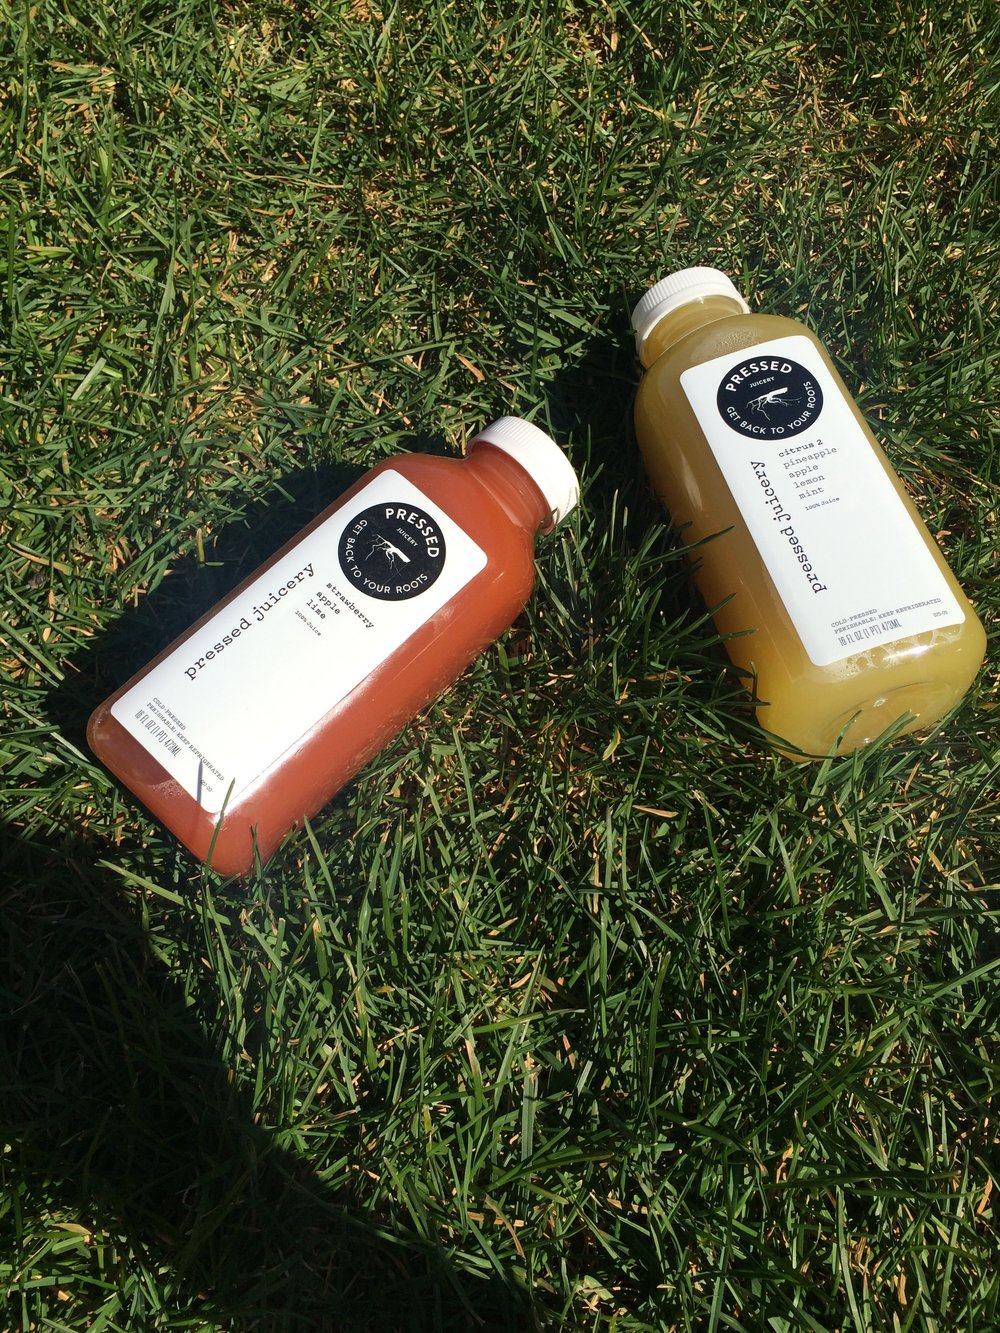 Scheduling things like big little dates in the grass wth my little and some pressed juices always puts a smile on face!